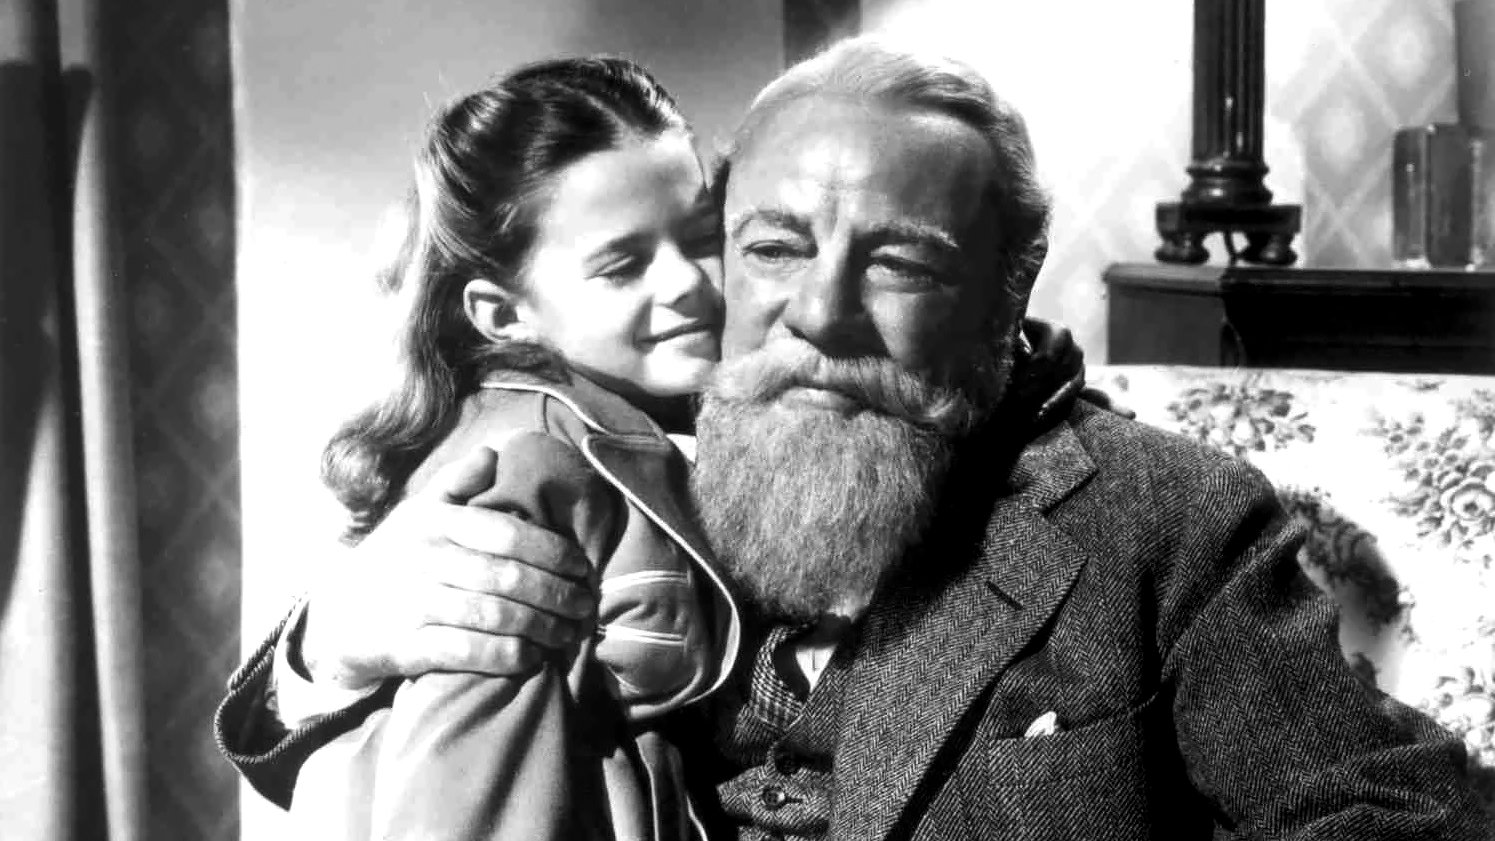 In Miracle on 34th Street, Kris Kringle must prove he really is Santa